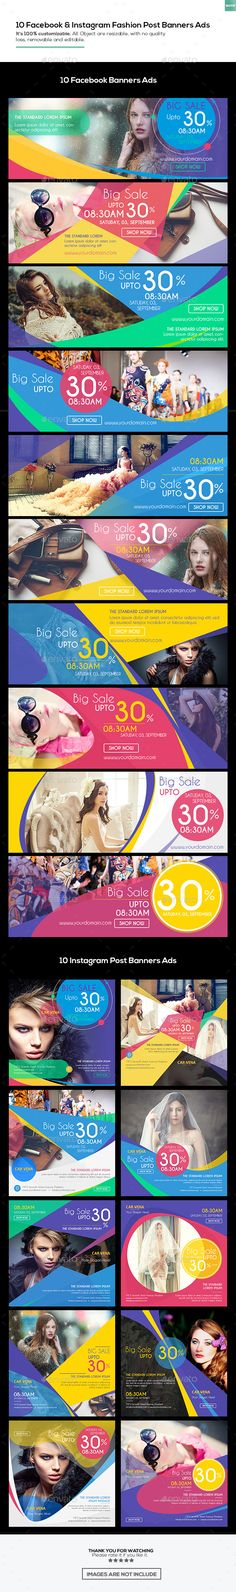 10 Facebook Cover & 10 Instagram Fashion Post Banners Ads Templates PSD #promotion Download here: https://graphicriver.net/item/10-facebook-cover-10-instagram-fashion-post-banners-ads/17656114?ref=ksioks